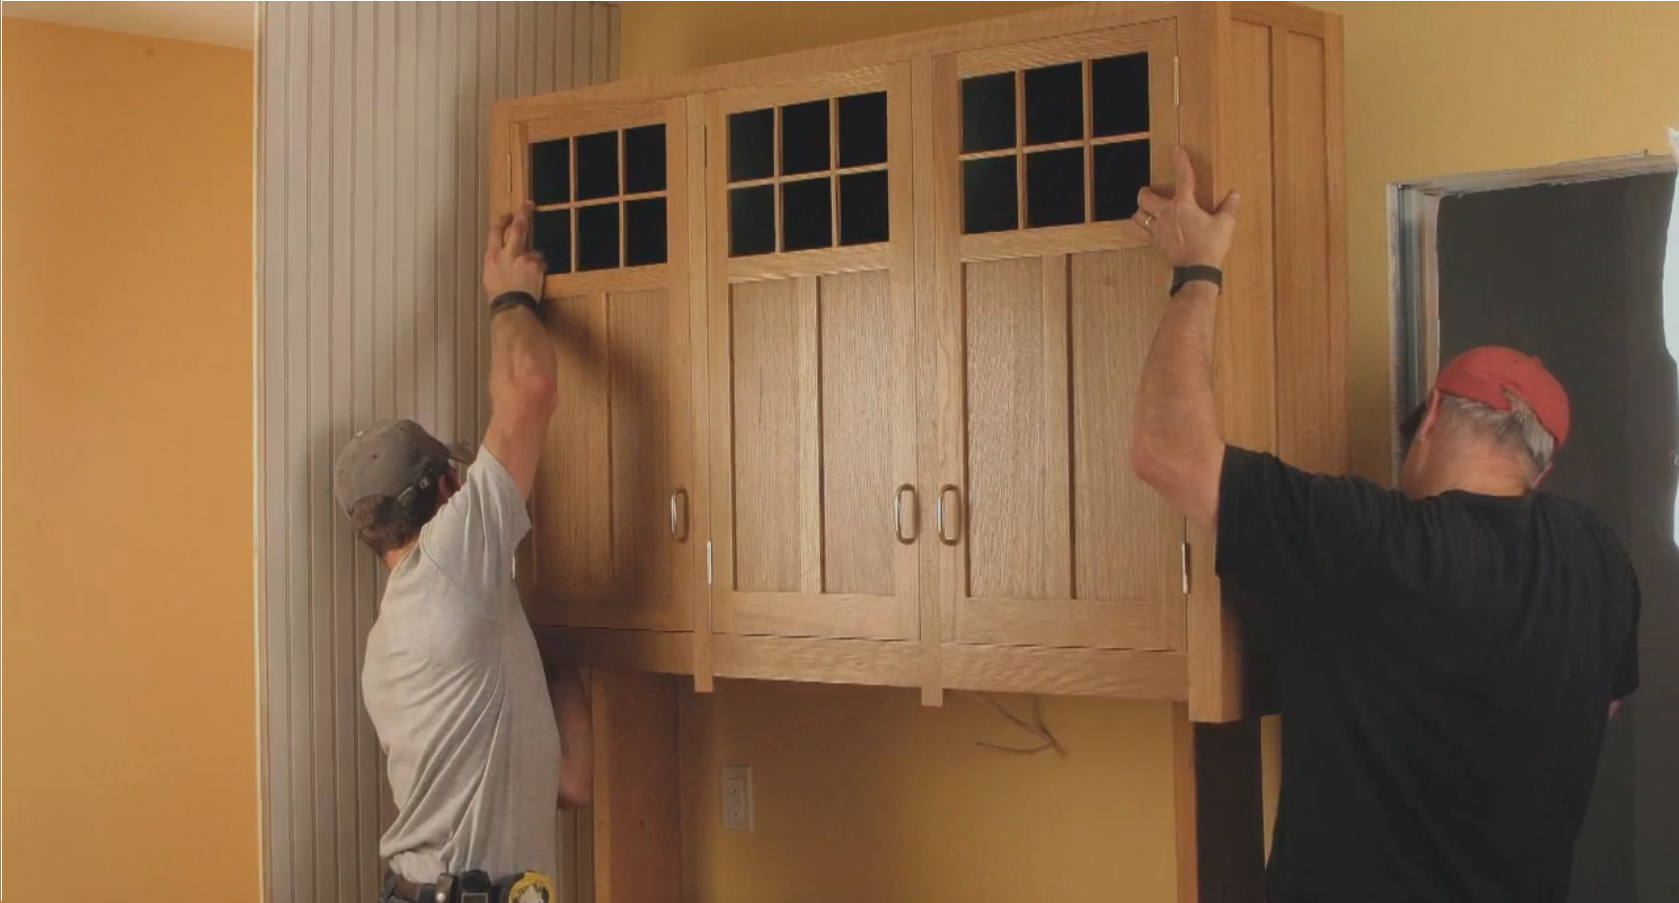 Master Carpenter Video How To Fit Inset Cabinet Doors - Fine Homebuilding & Master Carpenter Video: How To Fit Inset Cabinet Doors - Fine ...